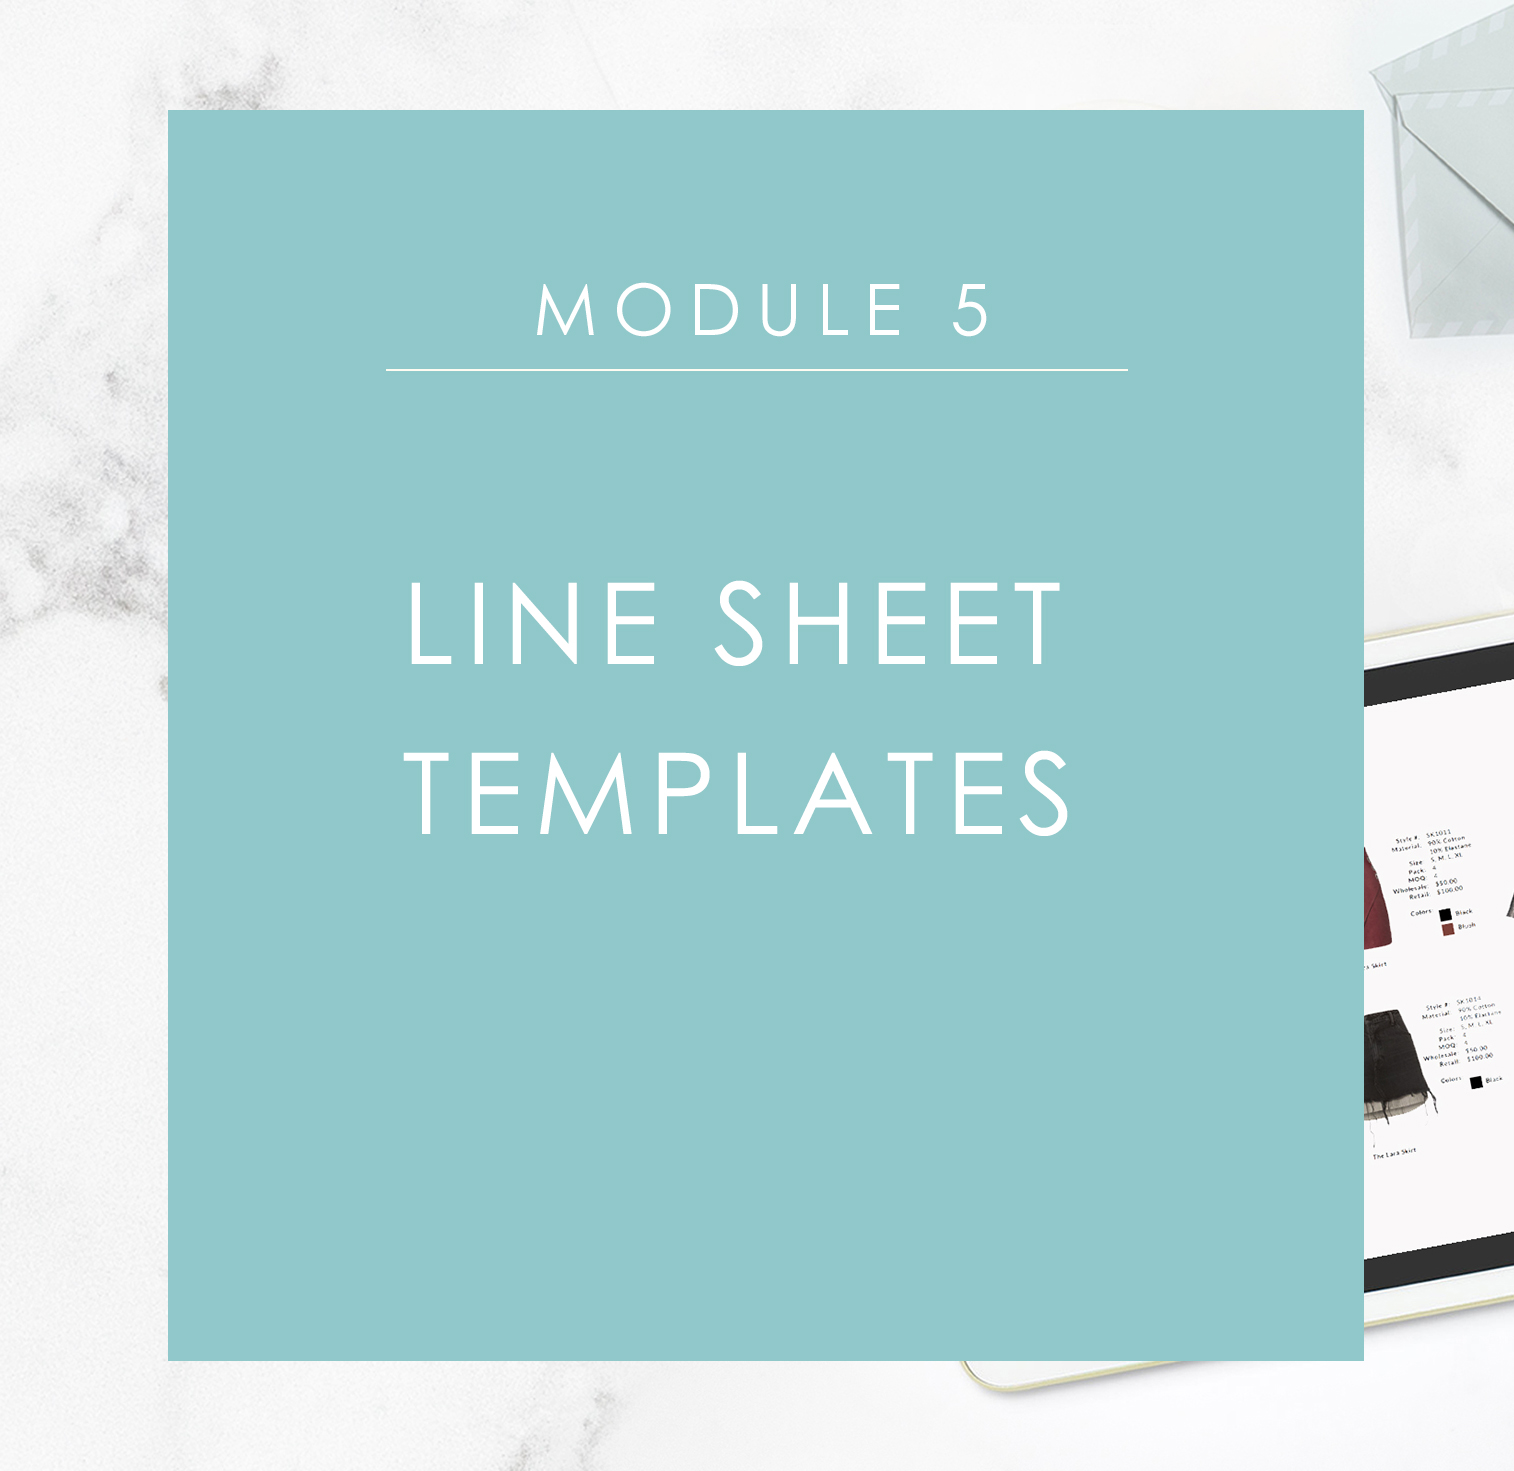 Module 5: Downloadable Line Sheet Templates